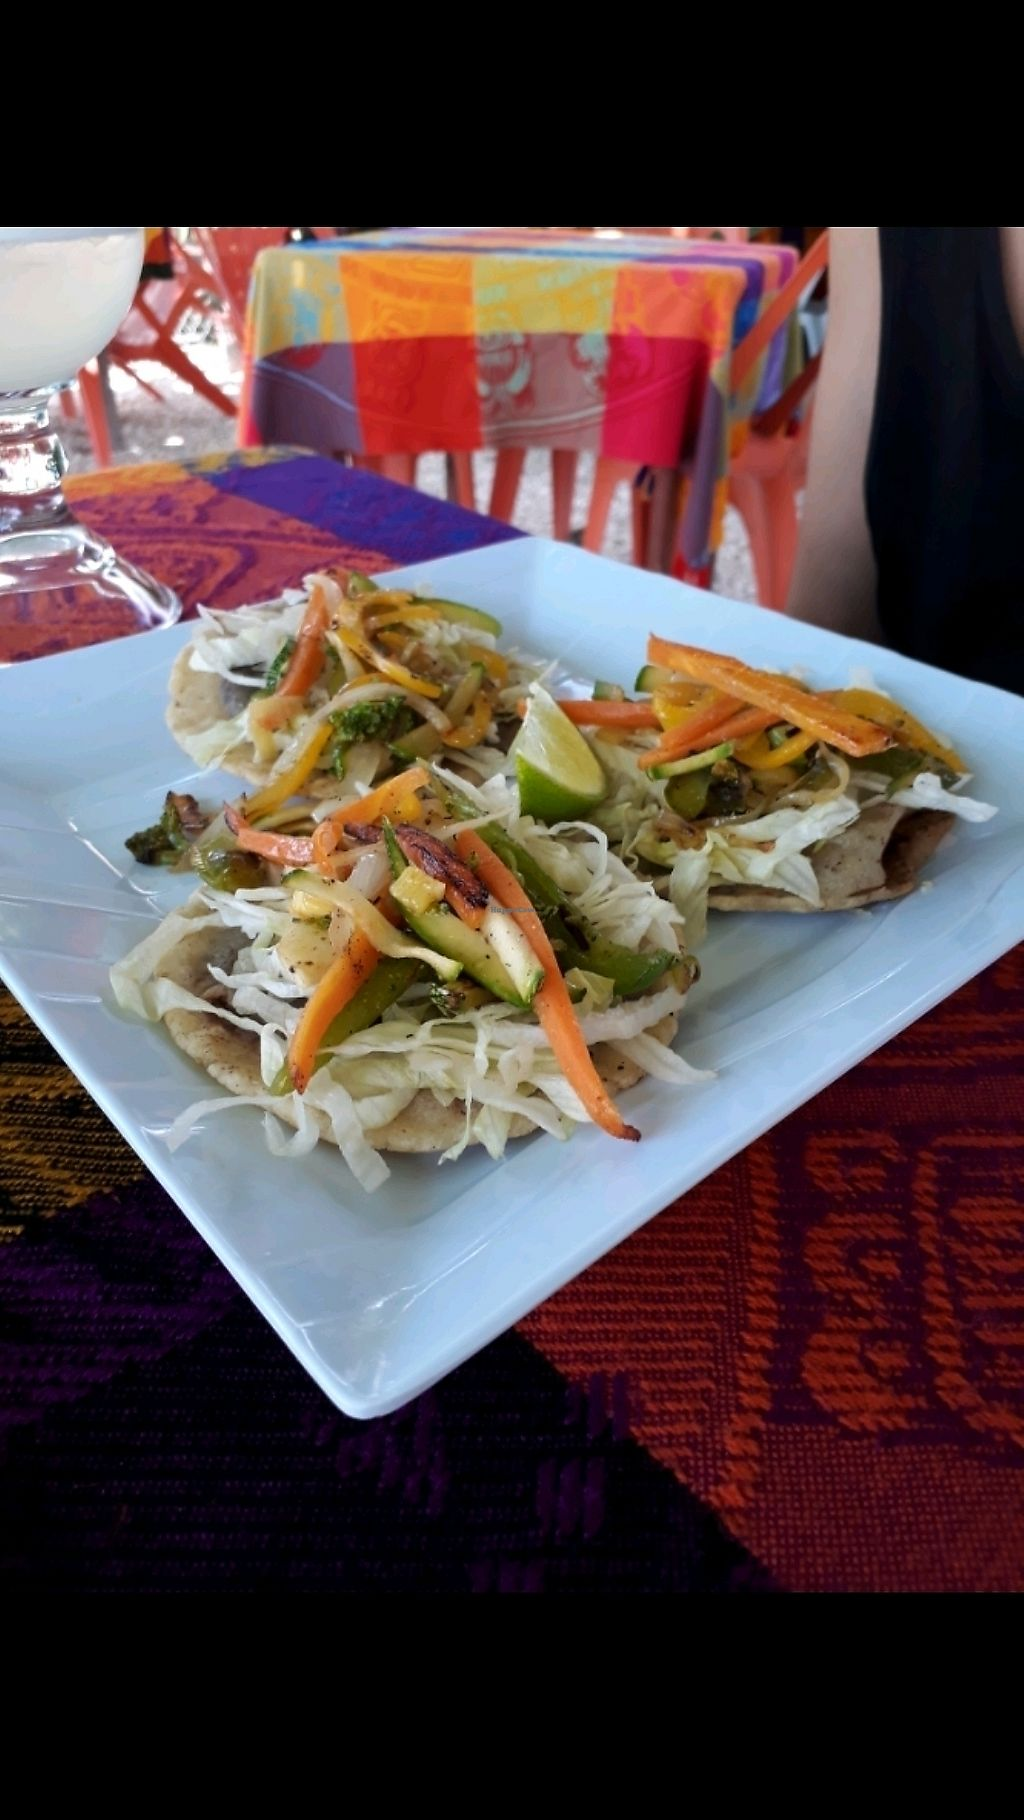 "Photo of El Cocodrilo  by <a href=""/members/profile/Flouw"">Flouw</a> <br/>vegan panuchos really good! <br/> March 5, 2018  - <a href='/contact/abuse/image/111619/367111'>Report</a>"